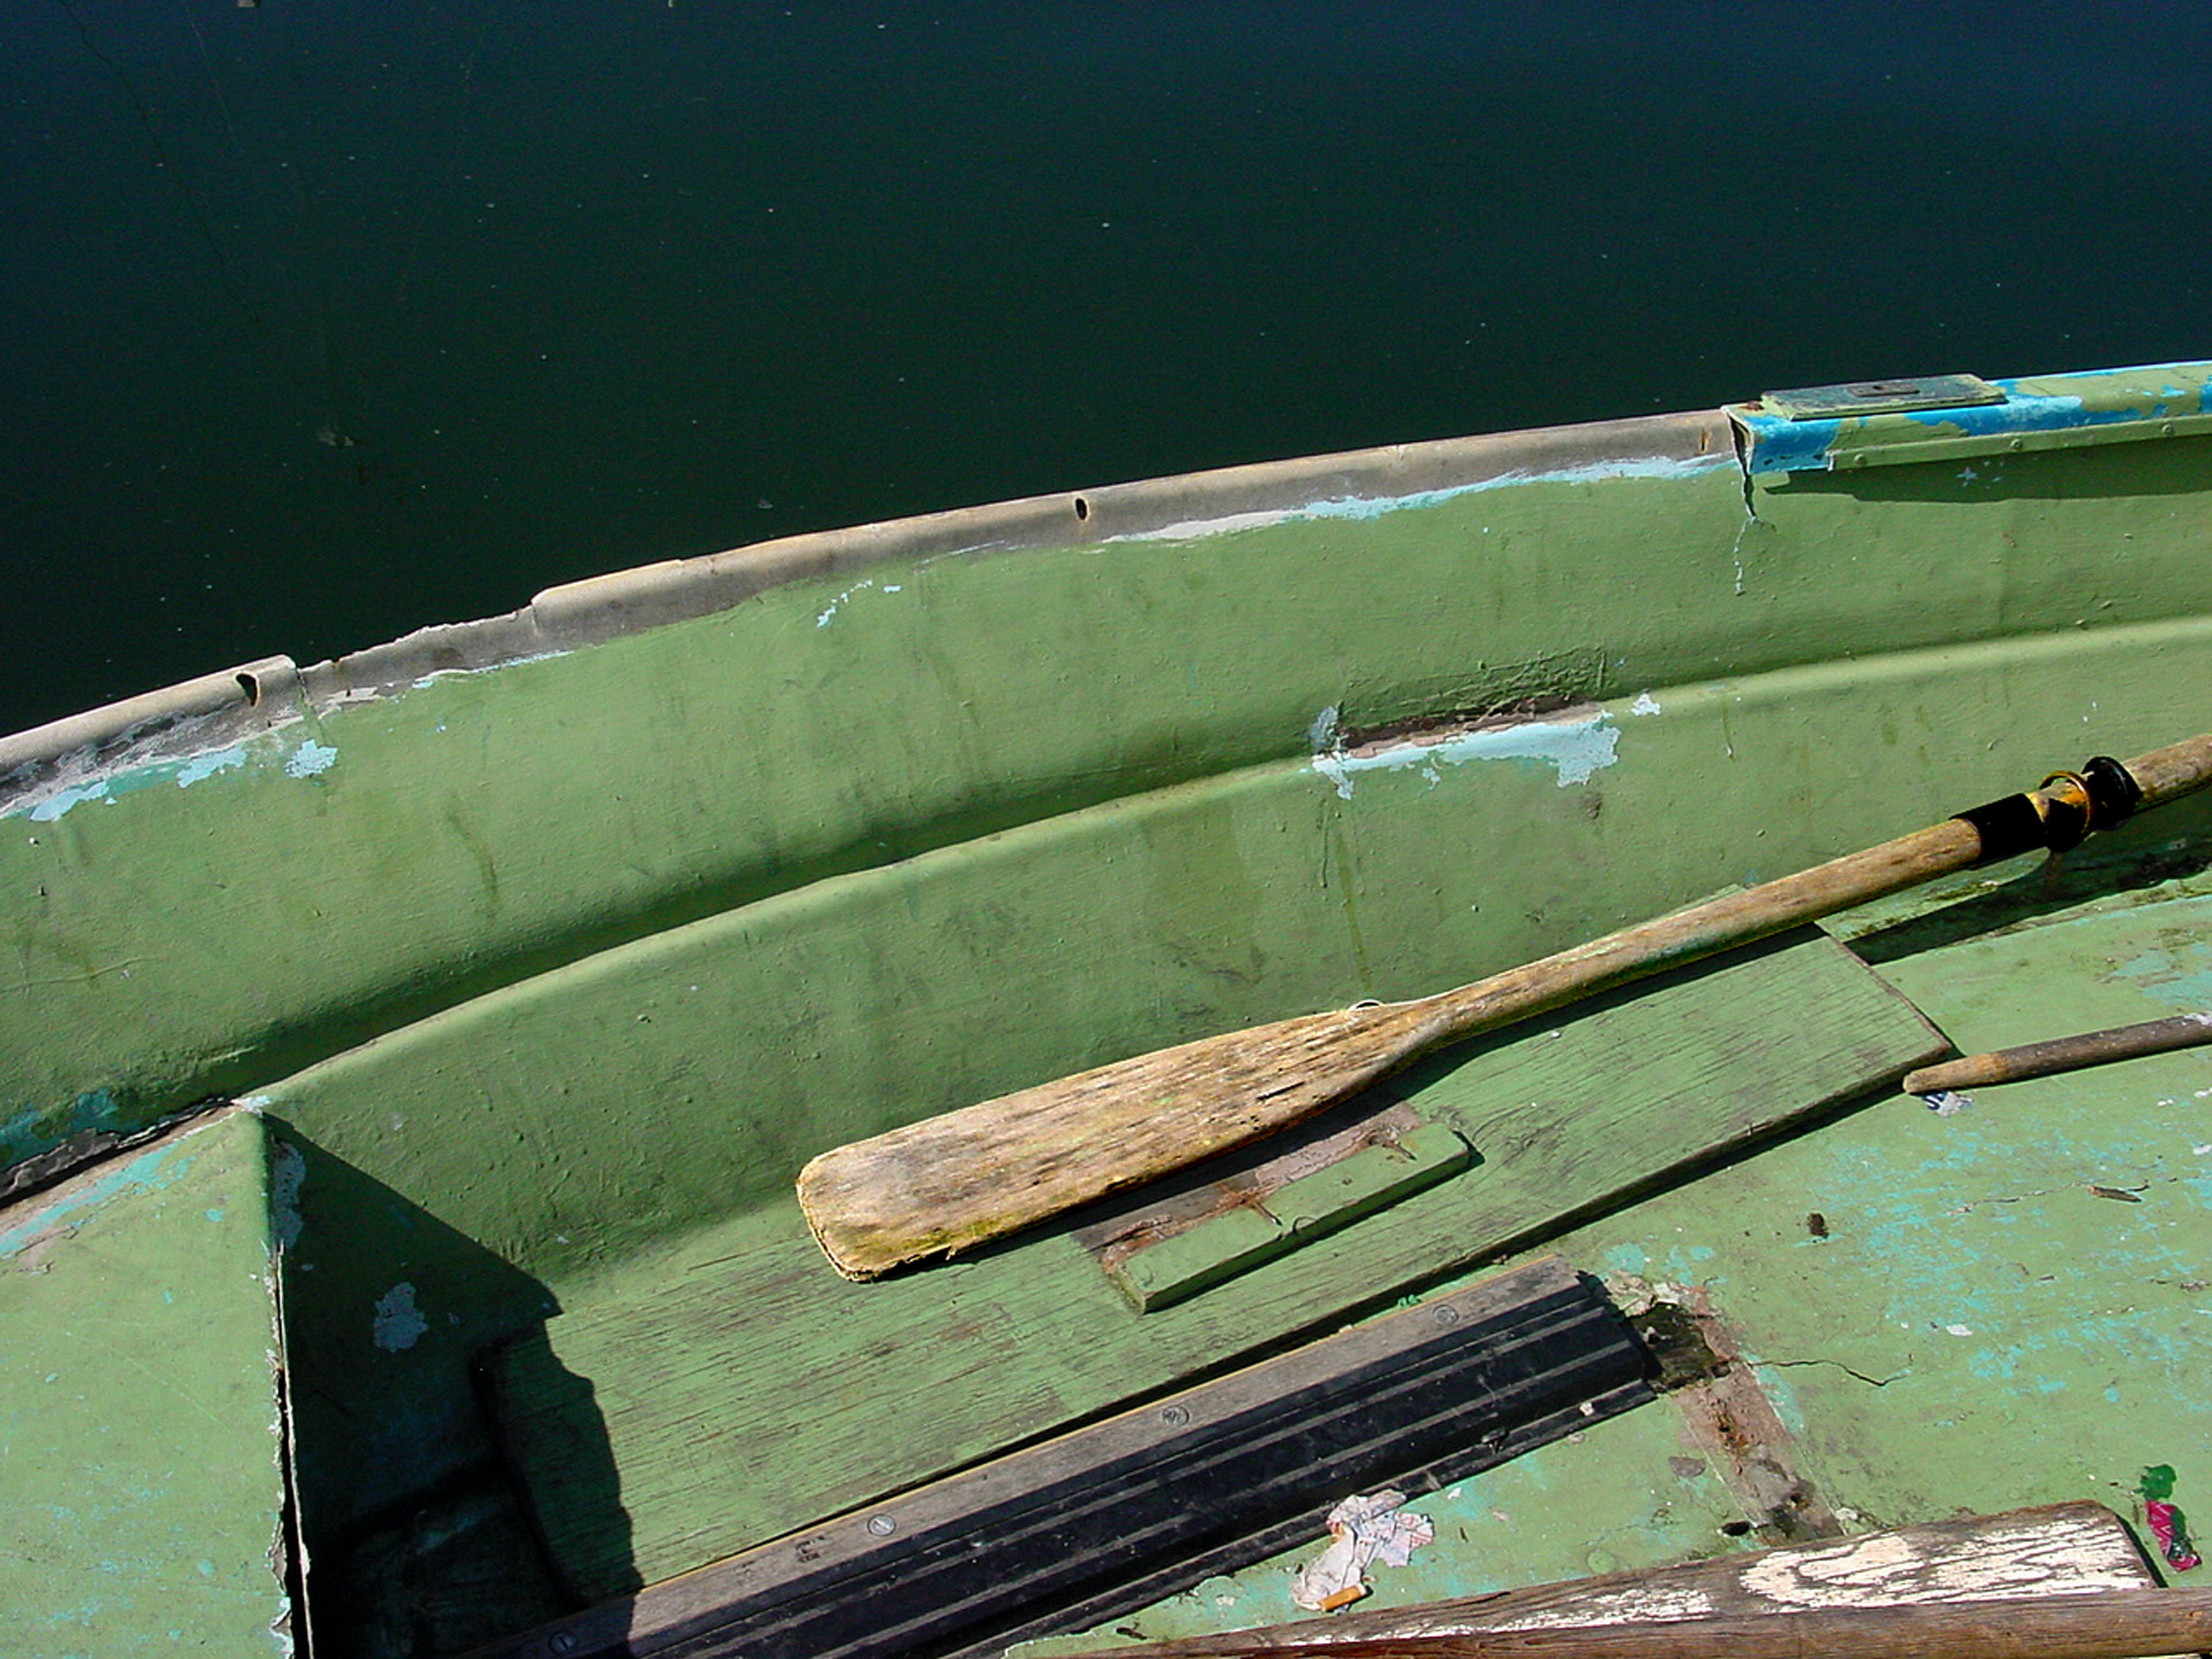 Free stock photo of Green dingy oar